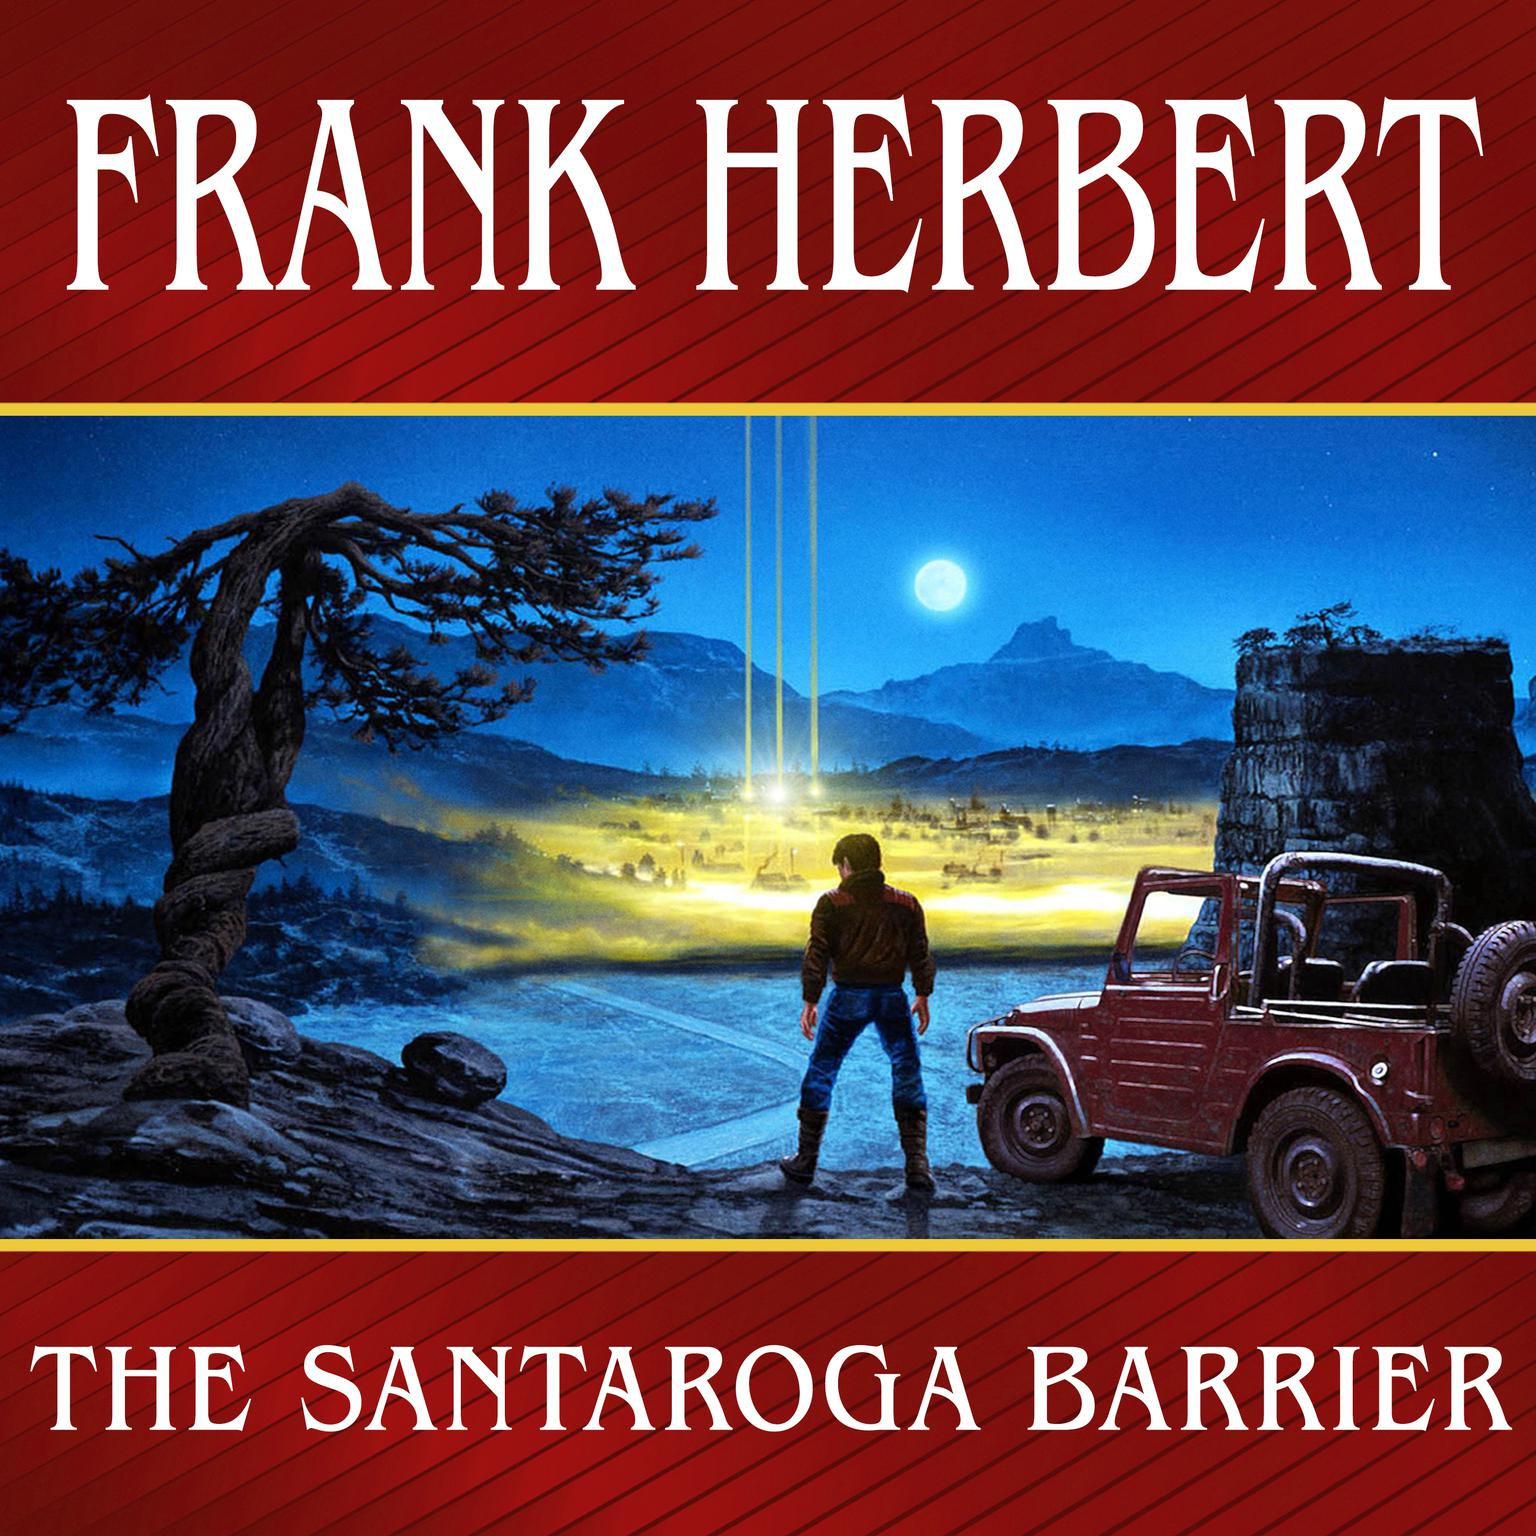 Printable The Santaroga Barrier Audiobook Cover Art